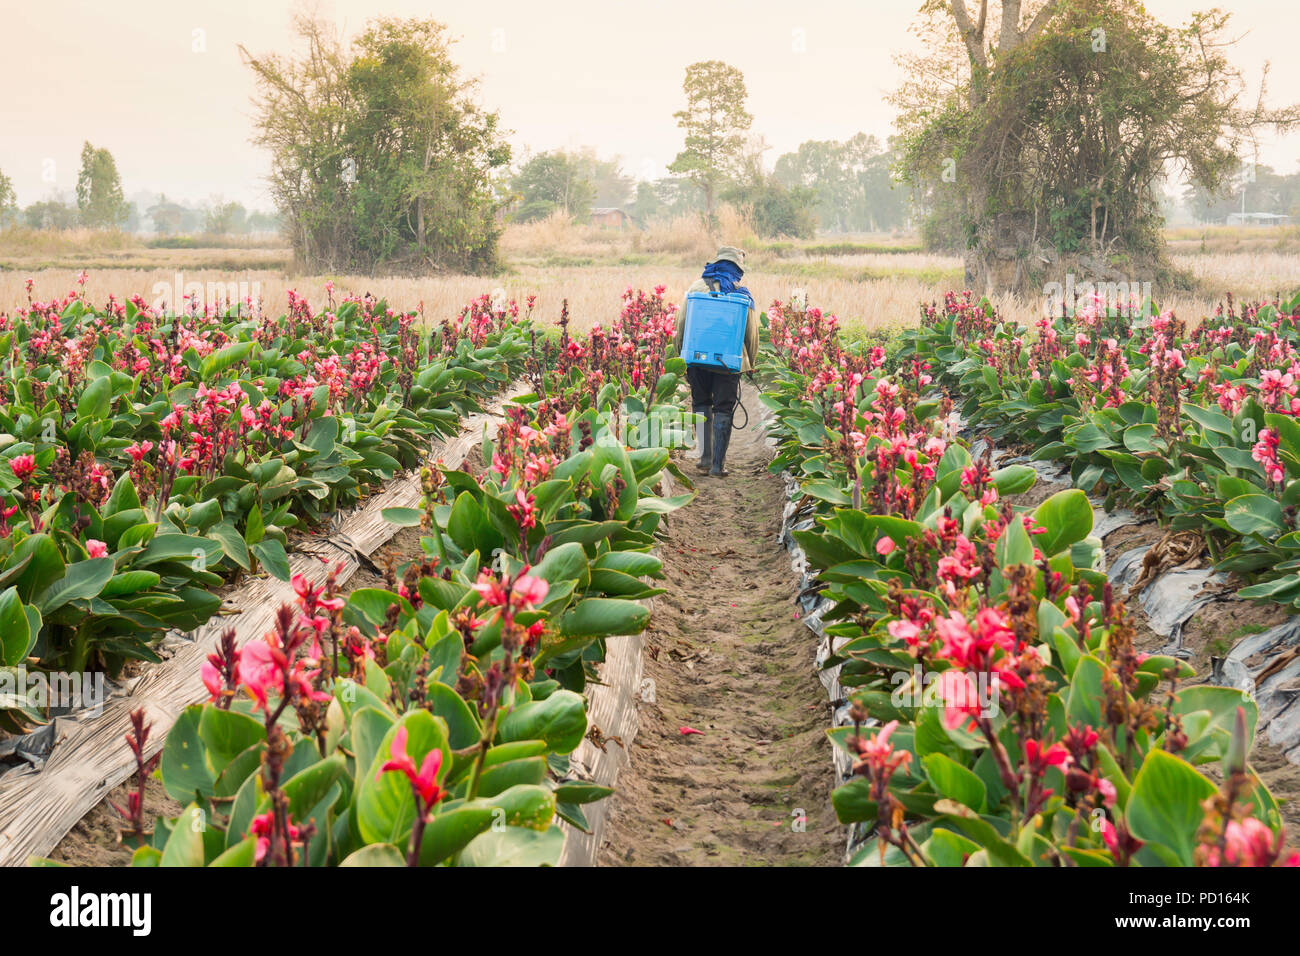 planter spraying pesticide in partition Canna at sunset. - Stock Image